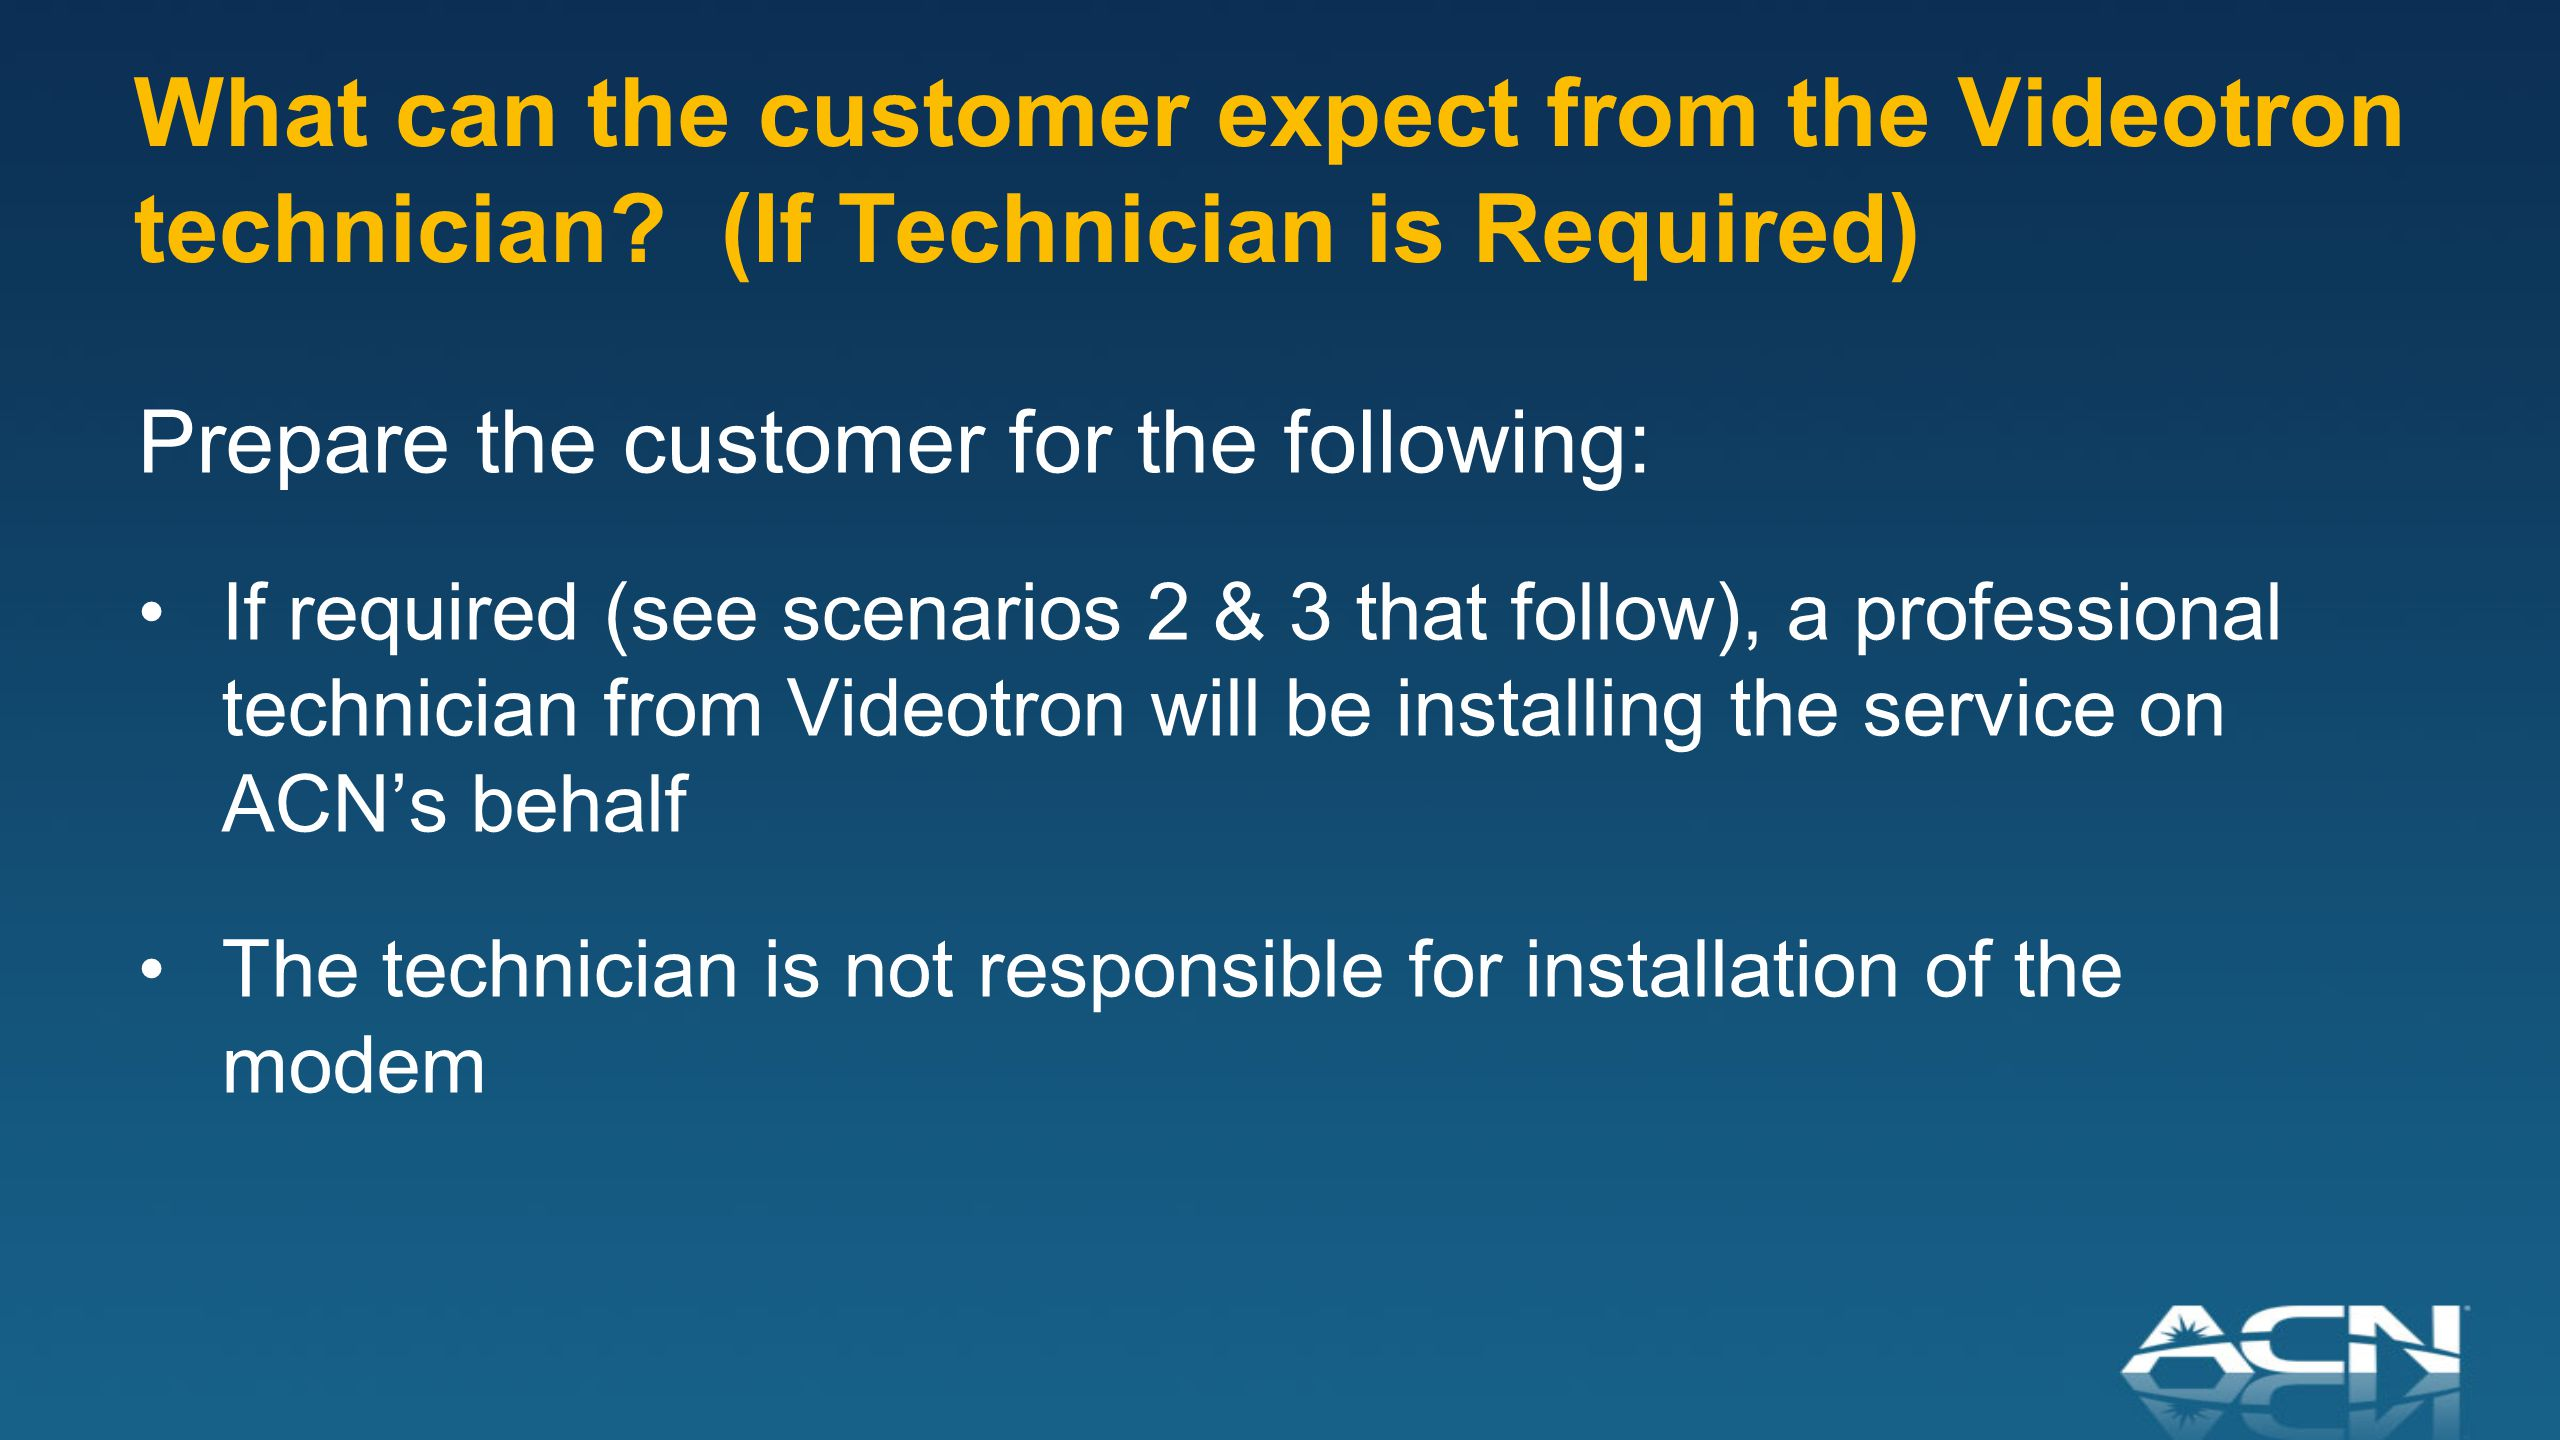 Prepare the customer for the following: If required (see scenarios 2 & 3 that follow), a professional technician from Videotron will be installing the service on ACN's behalf The technician is not responsible for installation of the modem What can the customer expect from the Videotron technician.